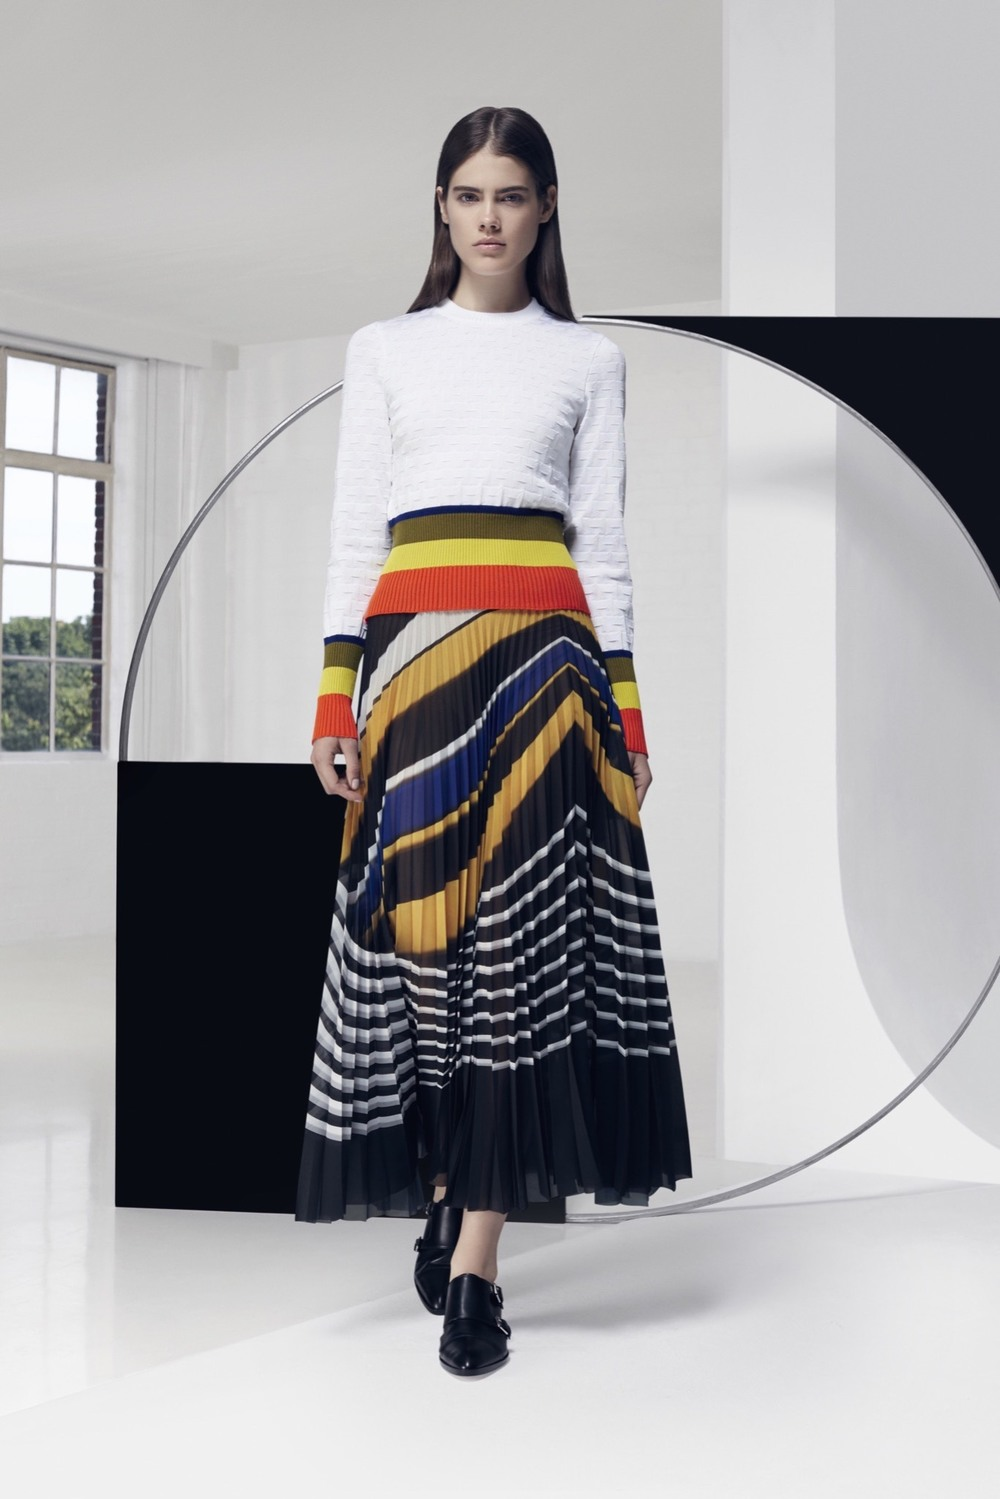 mary-katrantzou-028-1366.jpeg